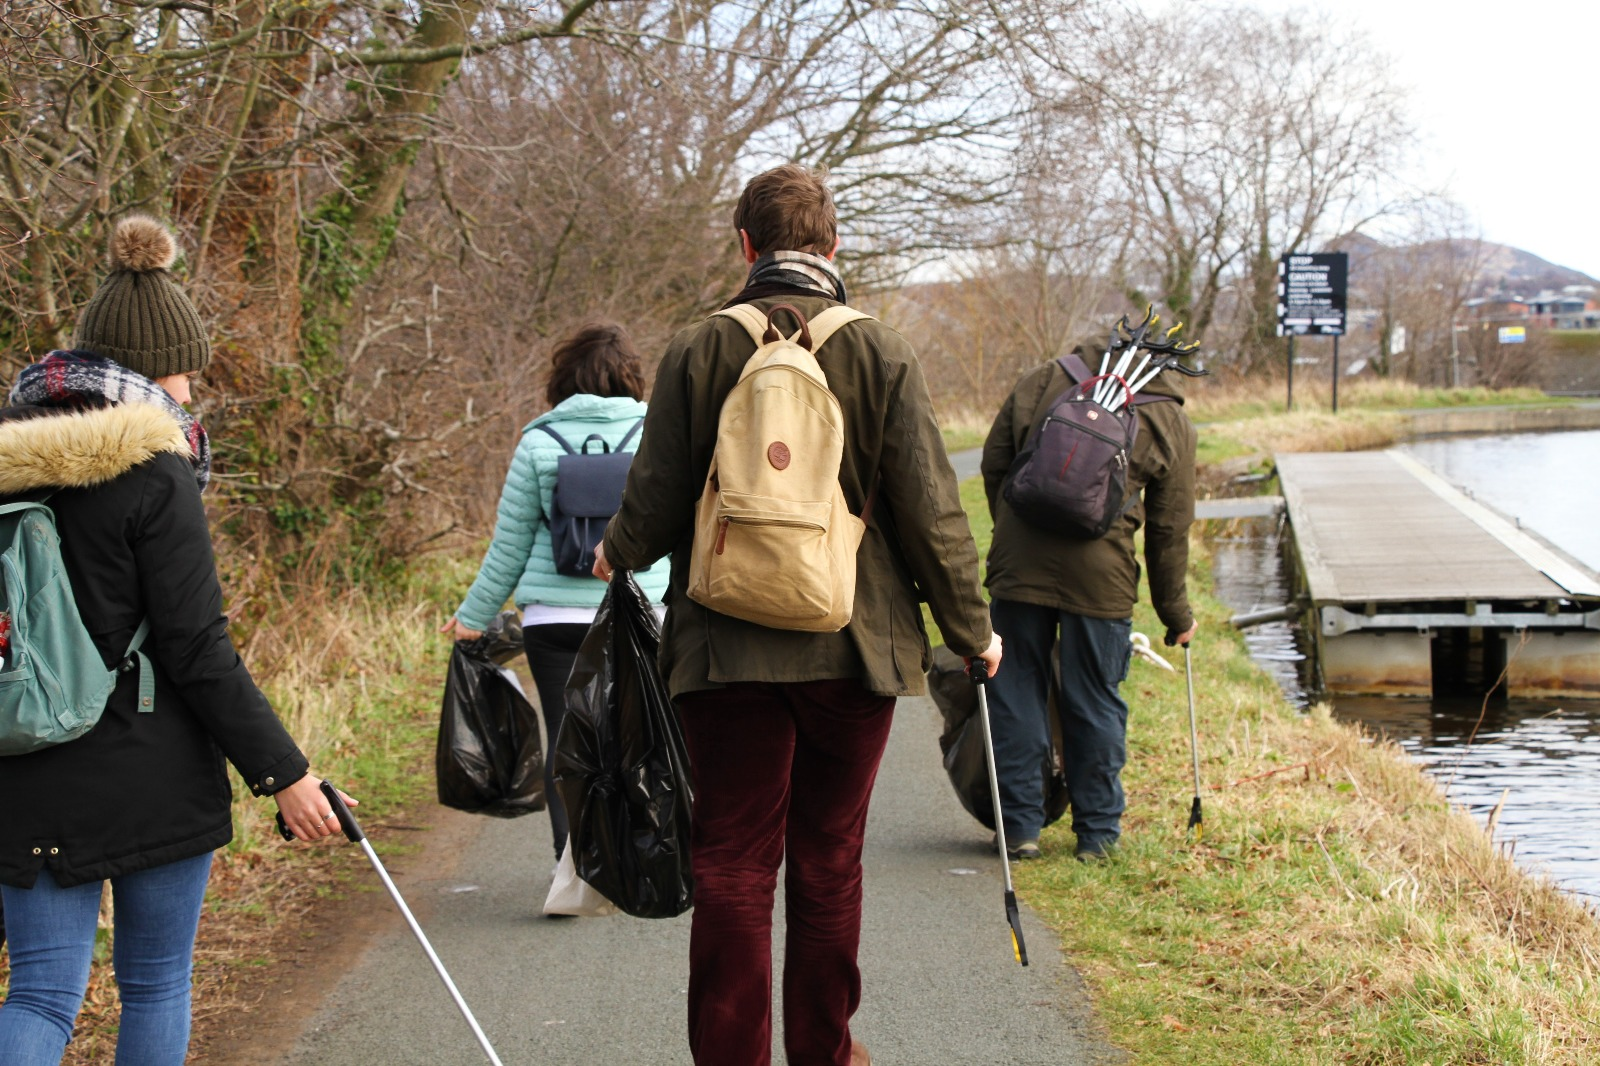 Clean-Up Hubs - This project places clean-up equipment at the heart of communities in Scotland to help keep our natural spaces free of litter and accessible to all.